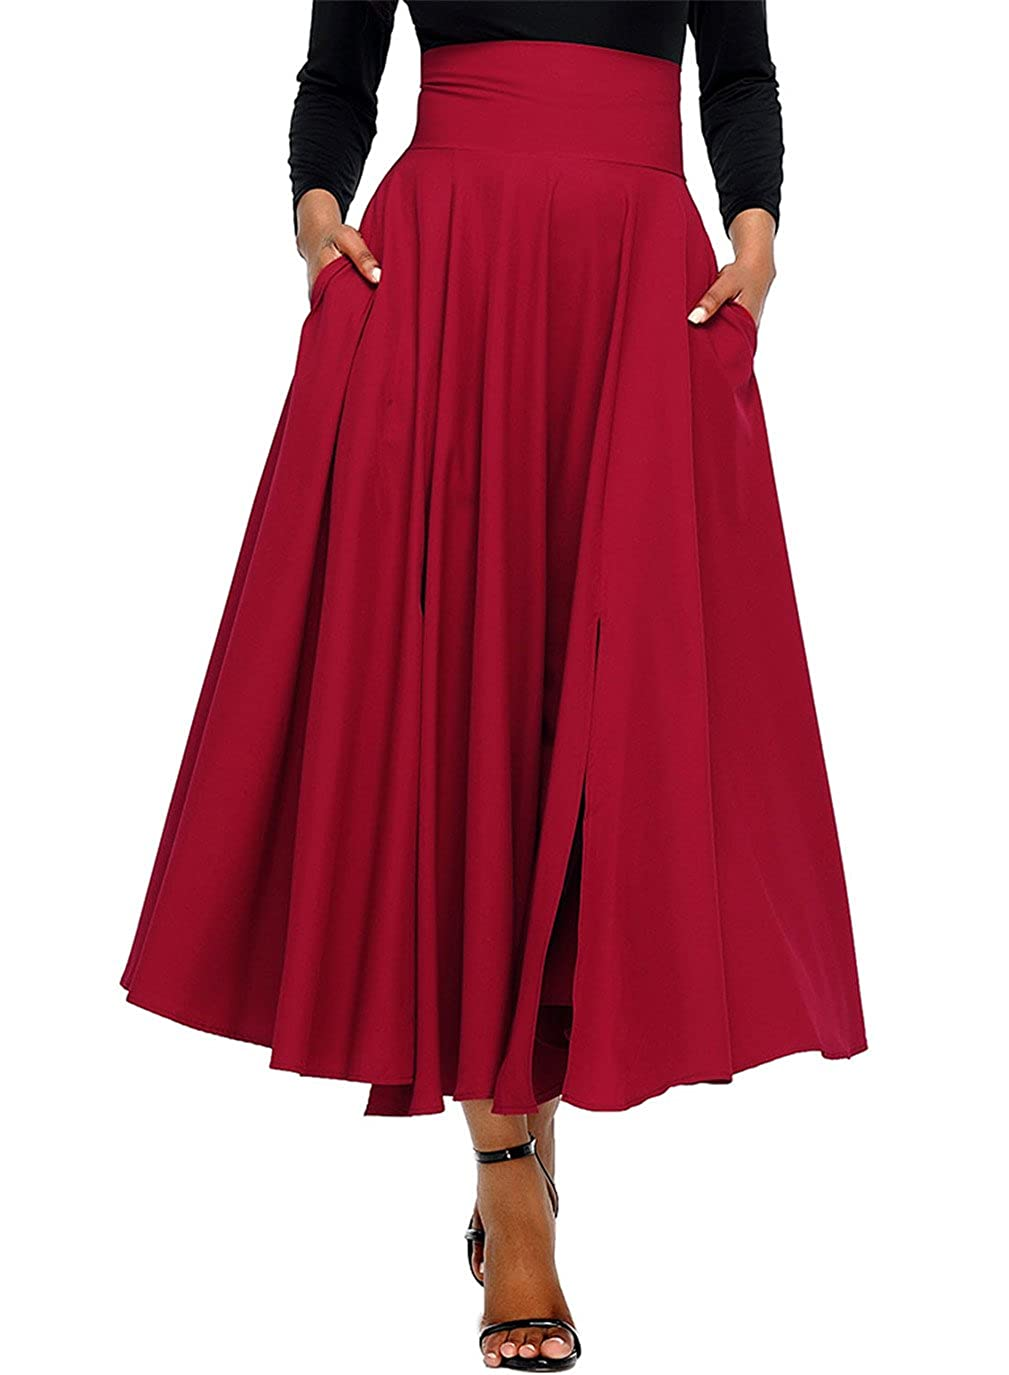 DOKOTOO Women's Casual Retro High Waist Pleated Belted Maxi Skirt WG65053